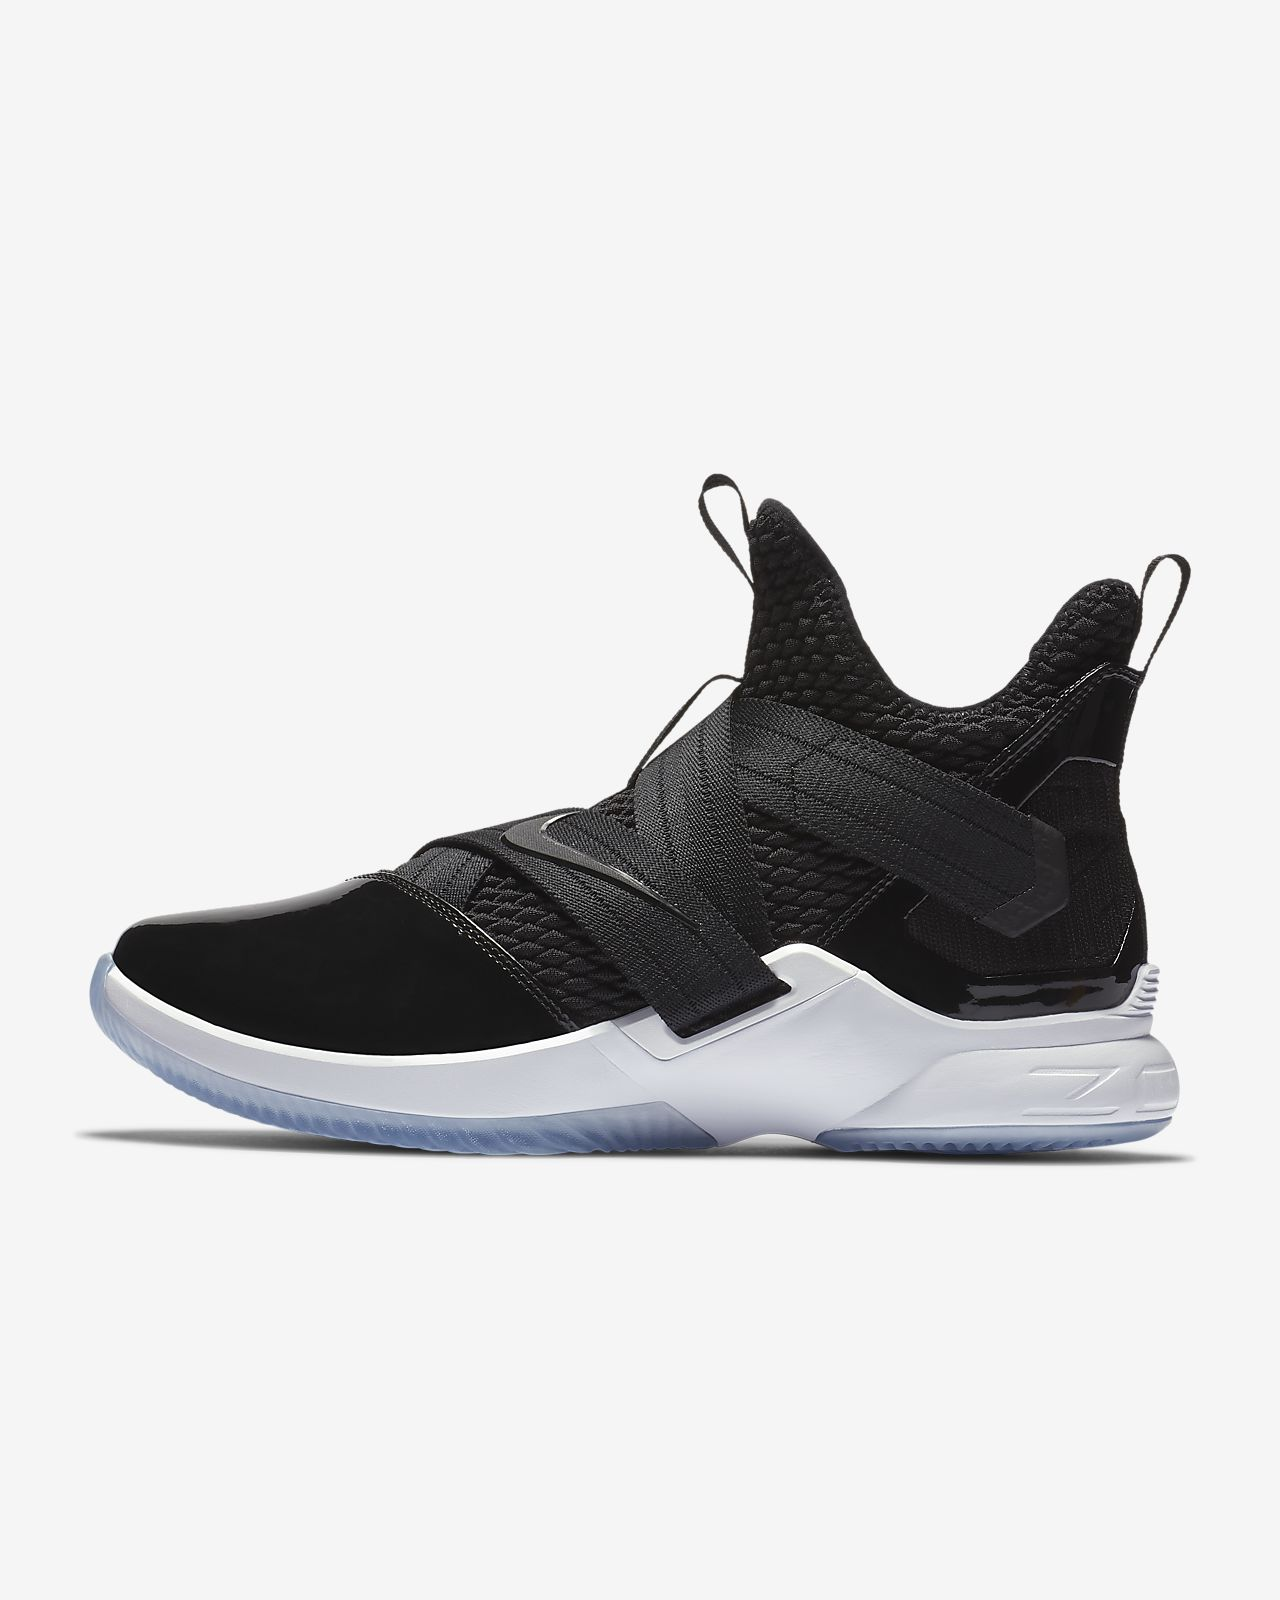 online retailer d038d 5d0e4 Low Resolution LeBron Soldier 12 SFG Basketball Shoe LeBron Soldier 12 SFG  Basketball Shoe